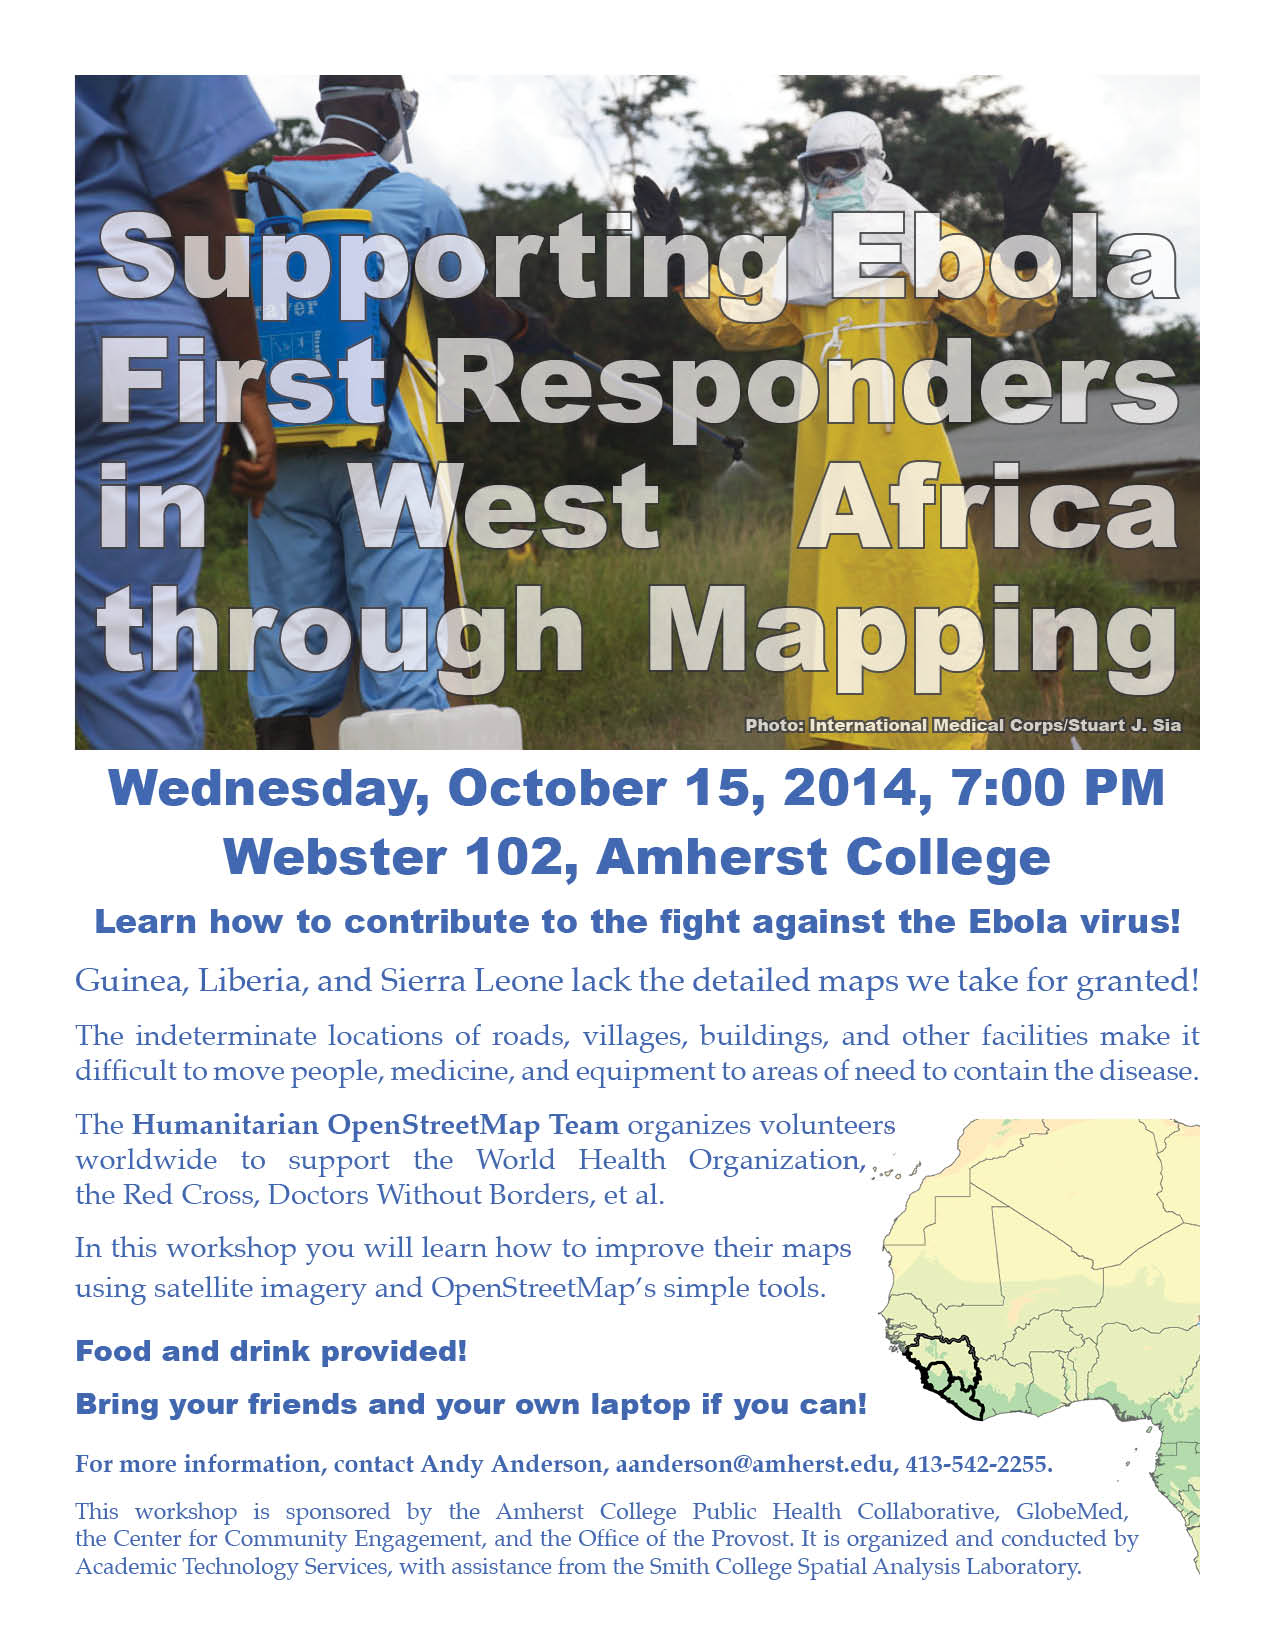 Supporting Ebola First Responders in West Africa through Mapping